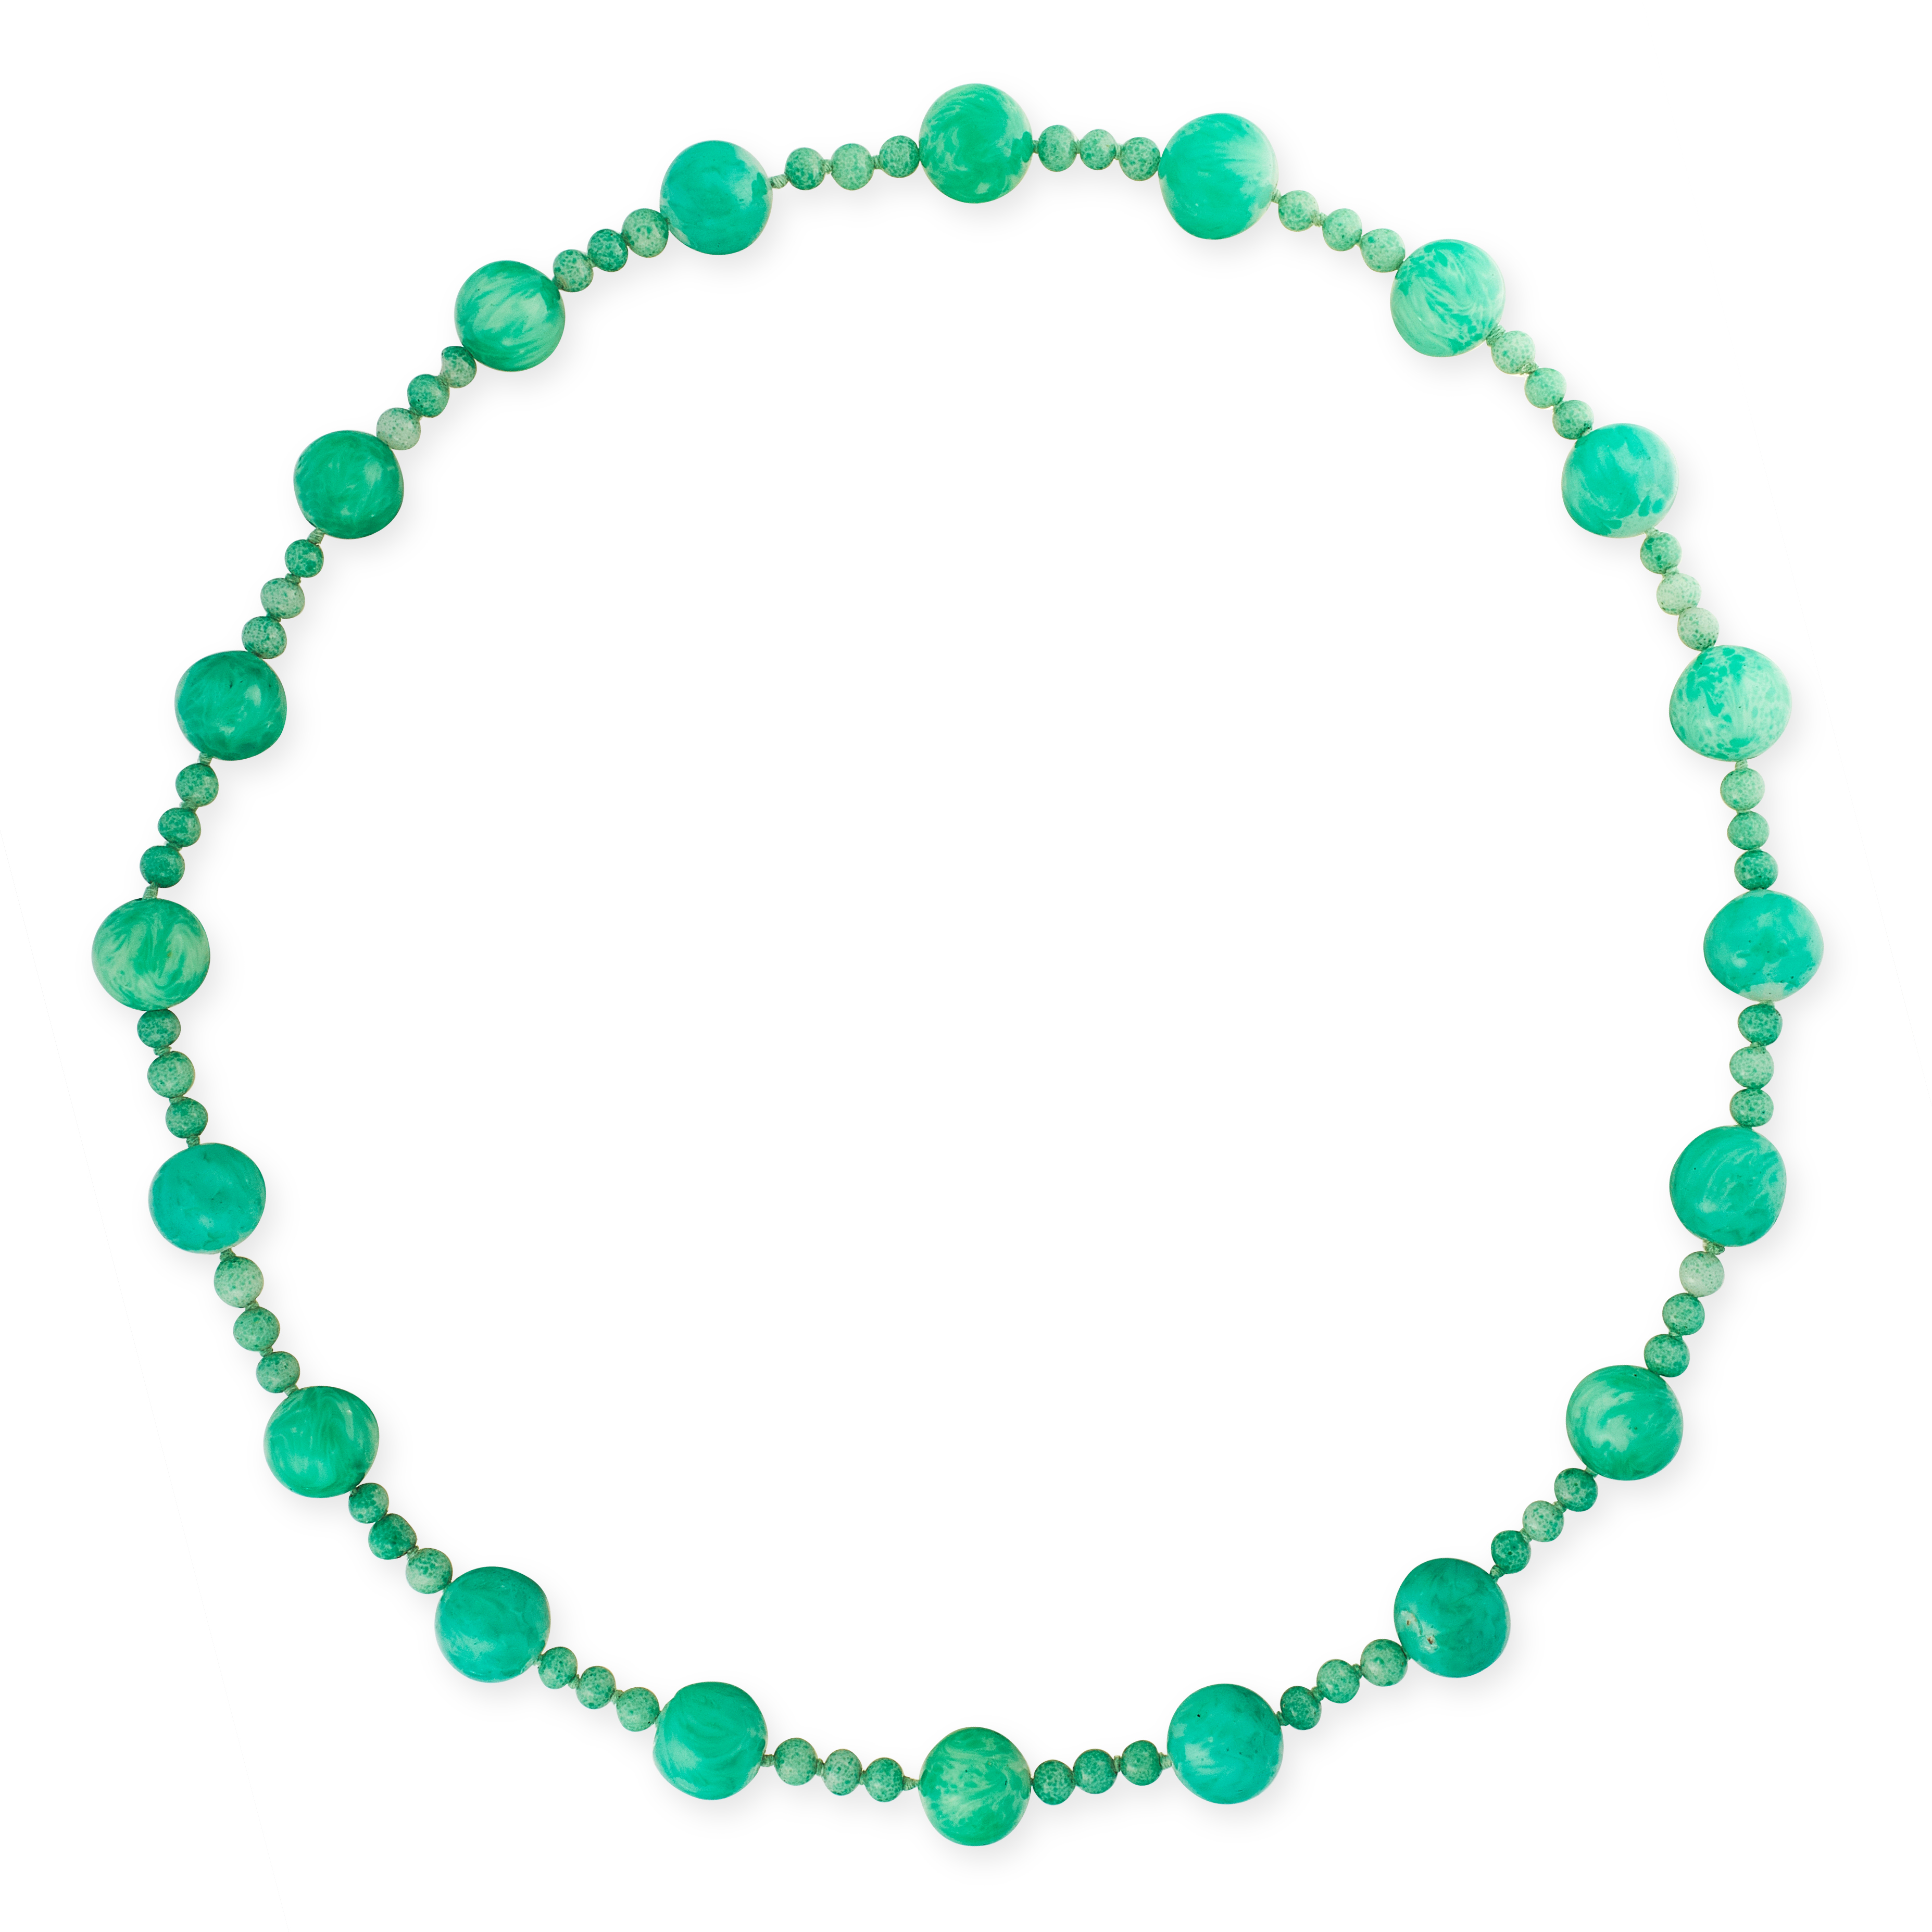 A GREEN HARDSTONE BEAD NECKLACE comprising a single row of twenty round polished green hard stone